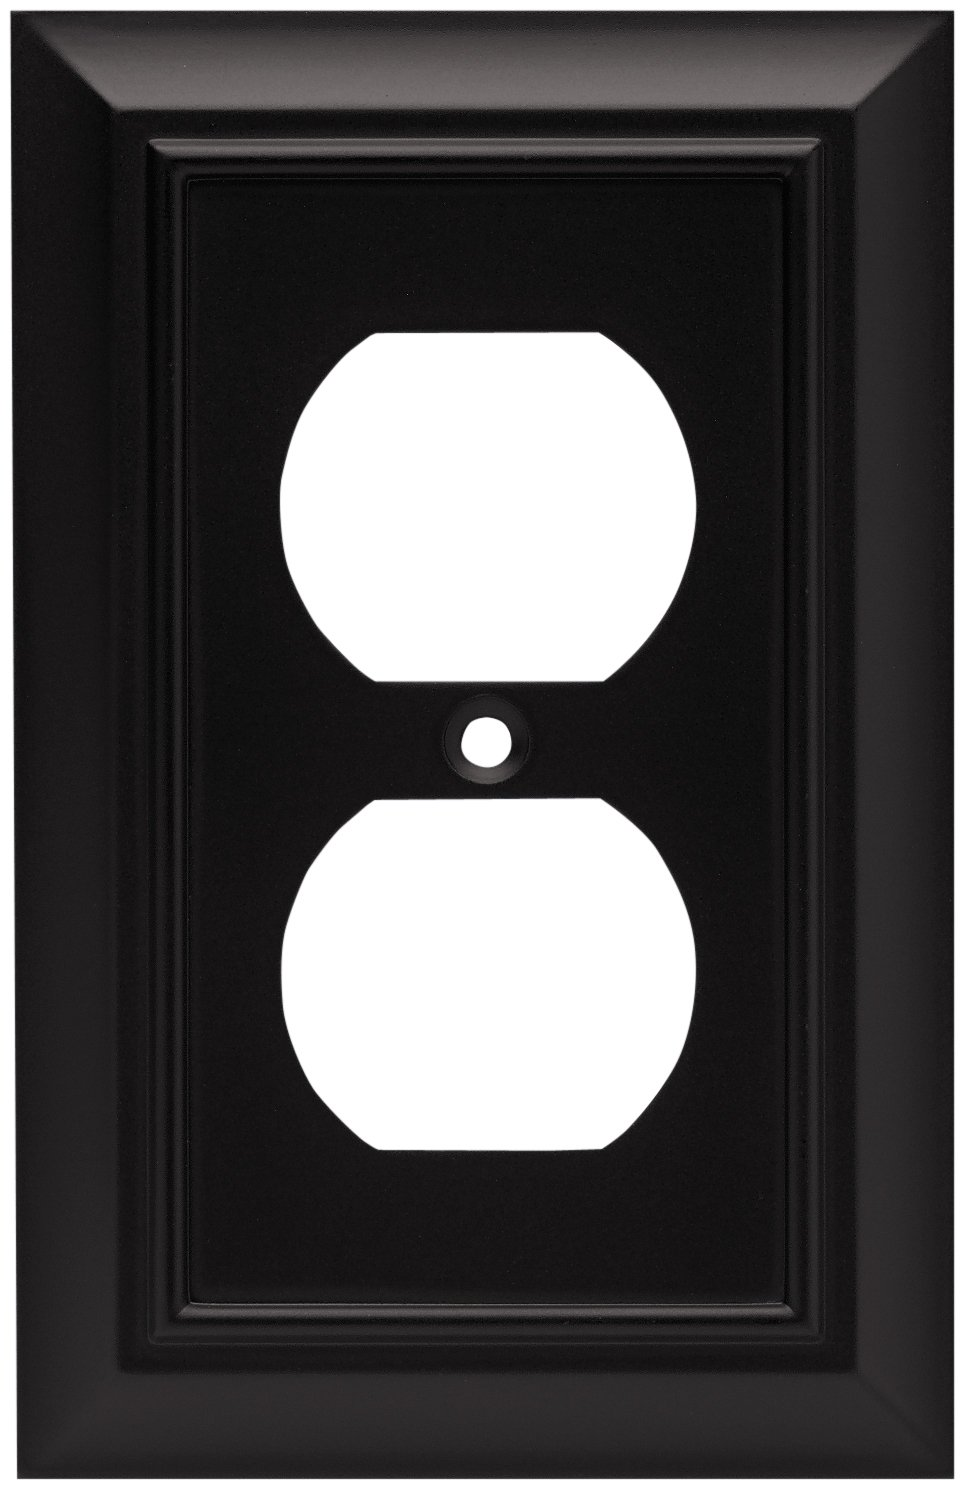 Brainerd 64218 architectural single duplex outlet wall plate brainerd 64218 architectural single duplex outlet wall plate switch plate cover flat black black light switch cover amazon sciox Gallery